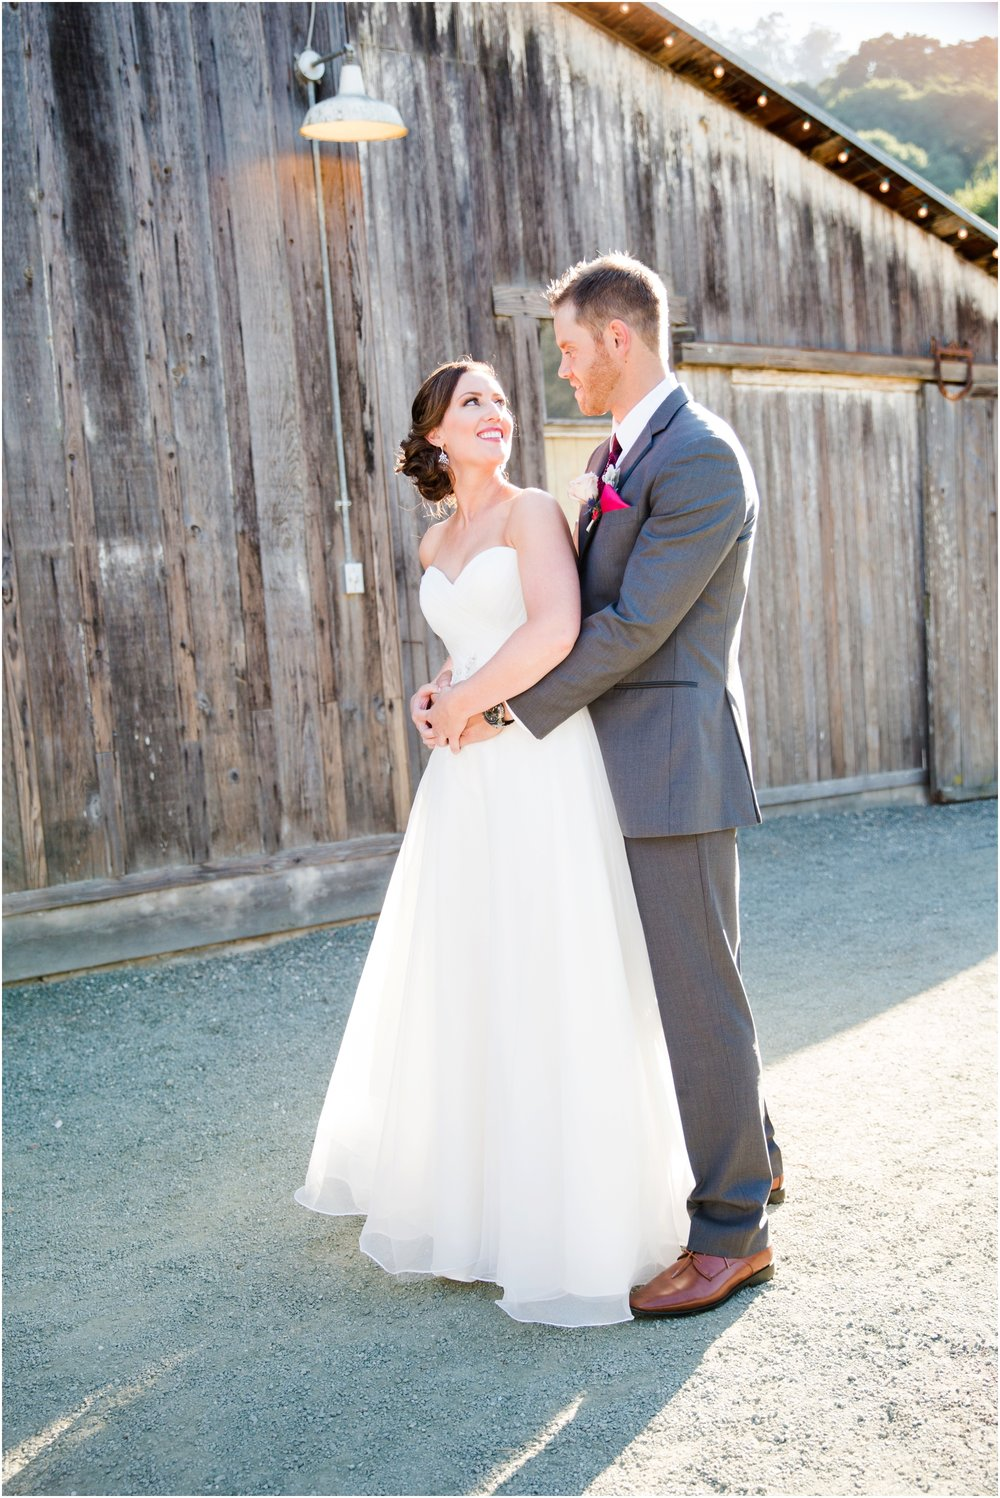 Picchetti Winery wedding pictures by Briana Calderon Photography_0452.jpg